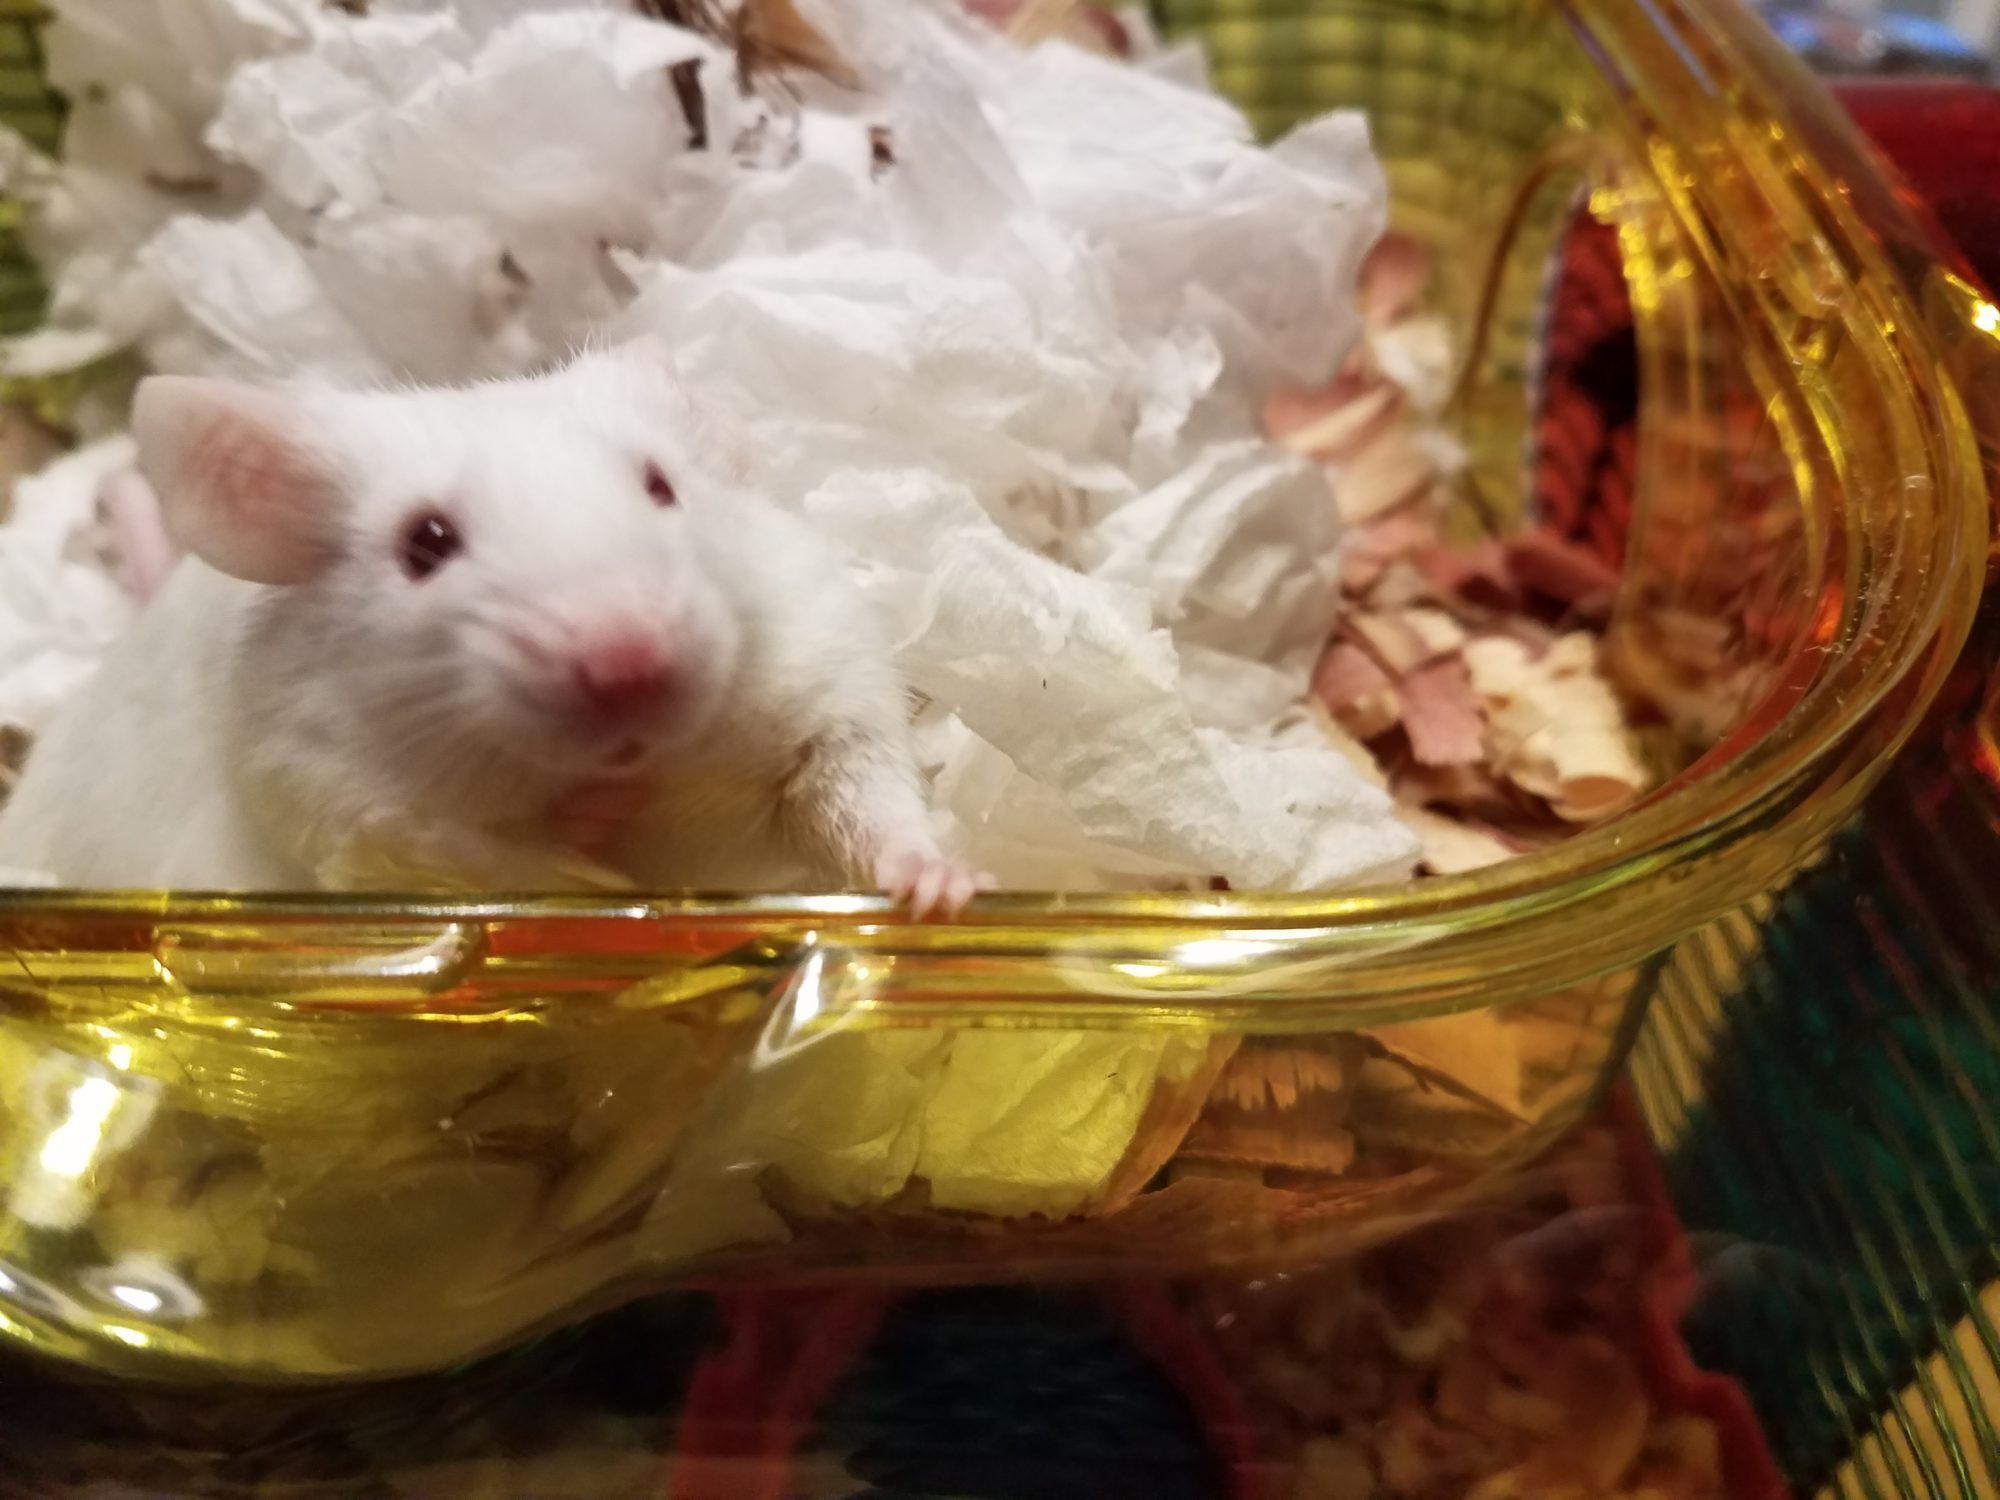 Wow! Classroom pets helps kids learn in many ways, according to a new study